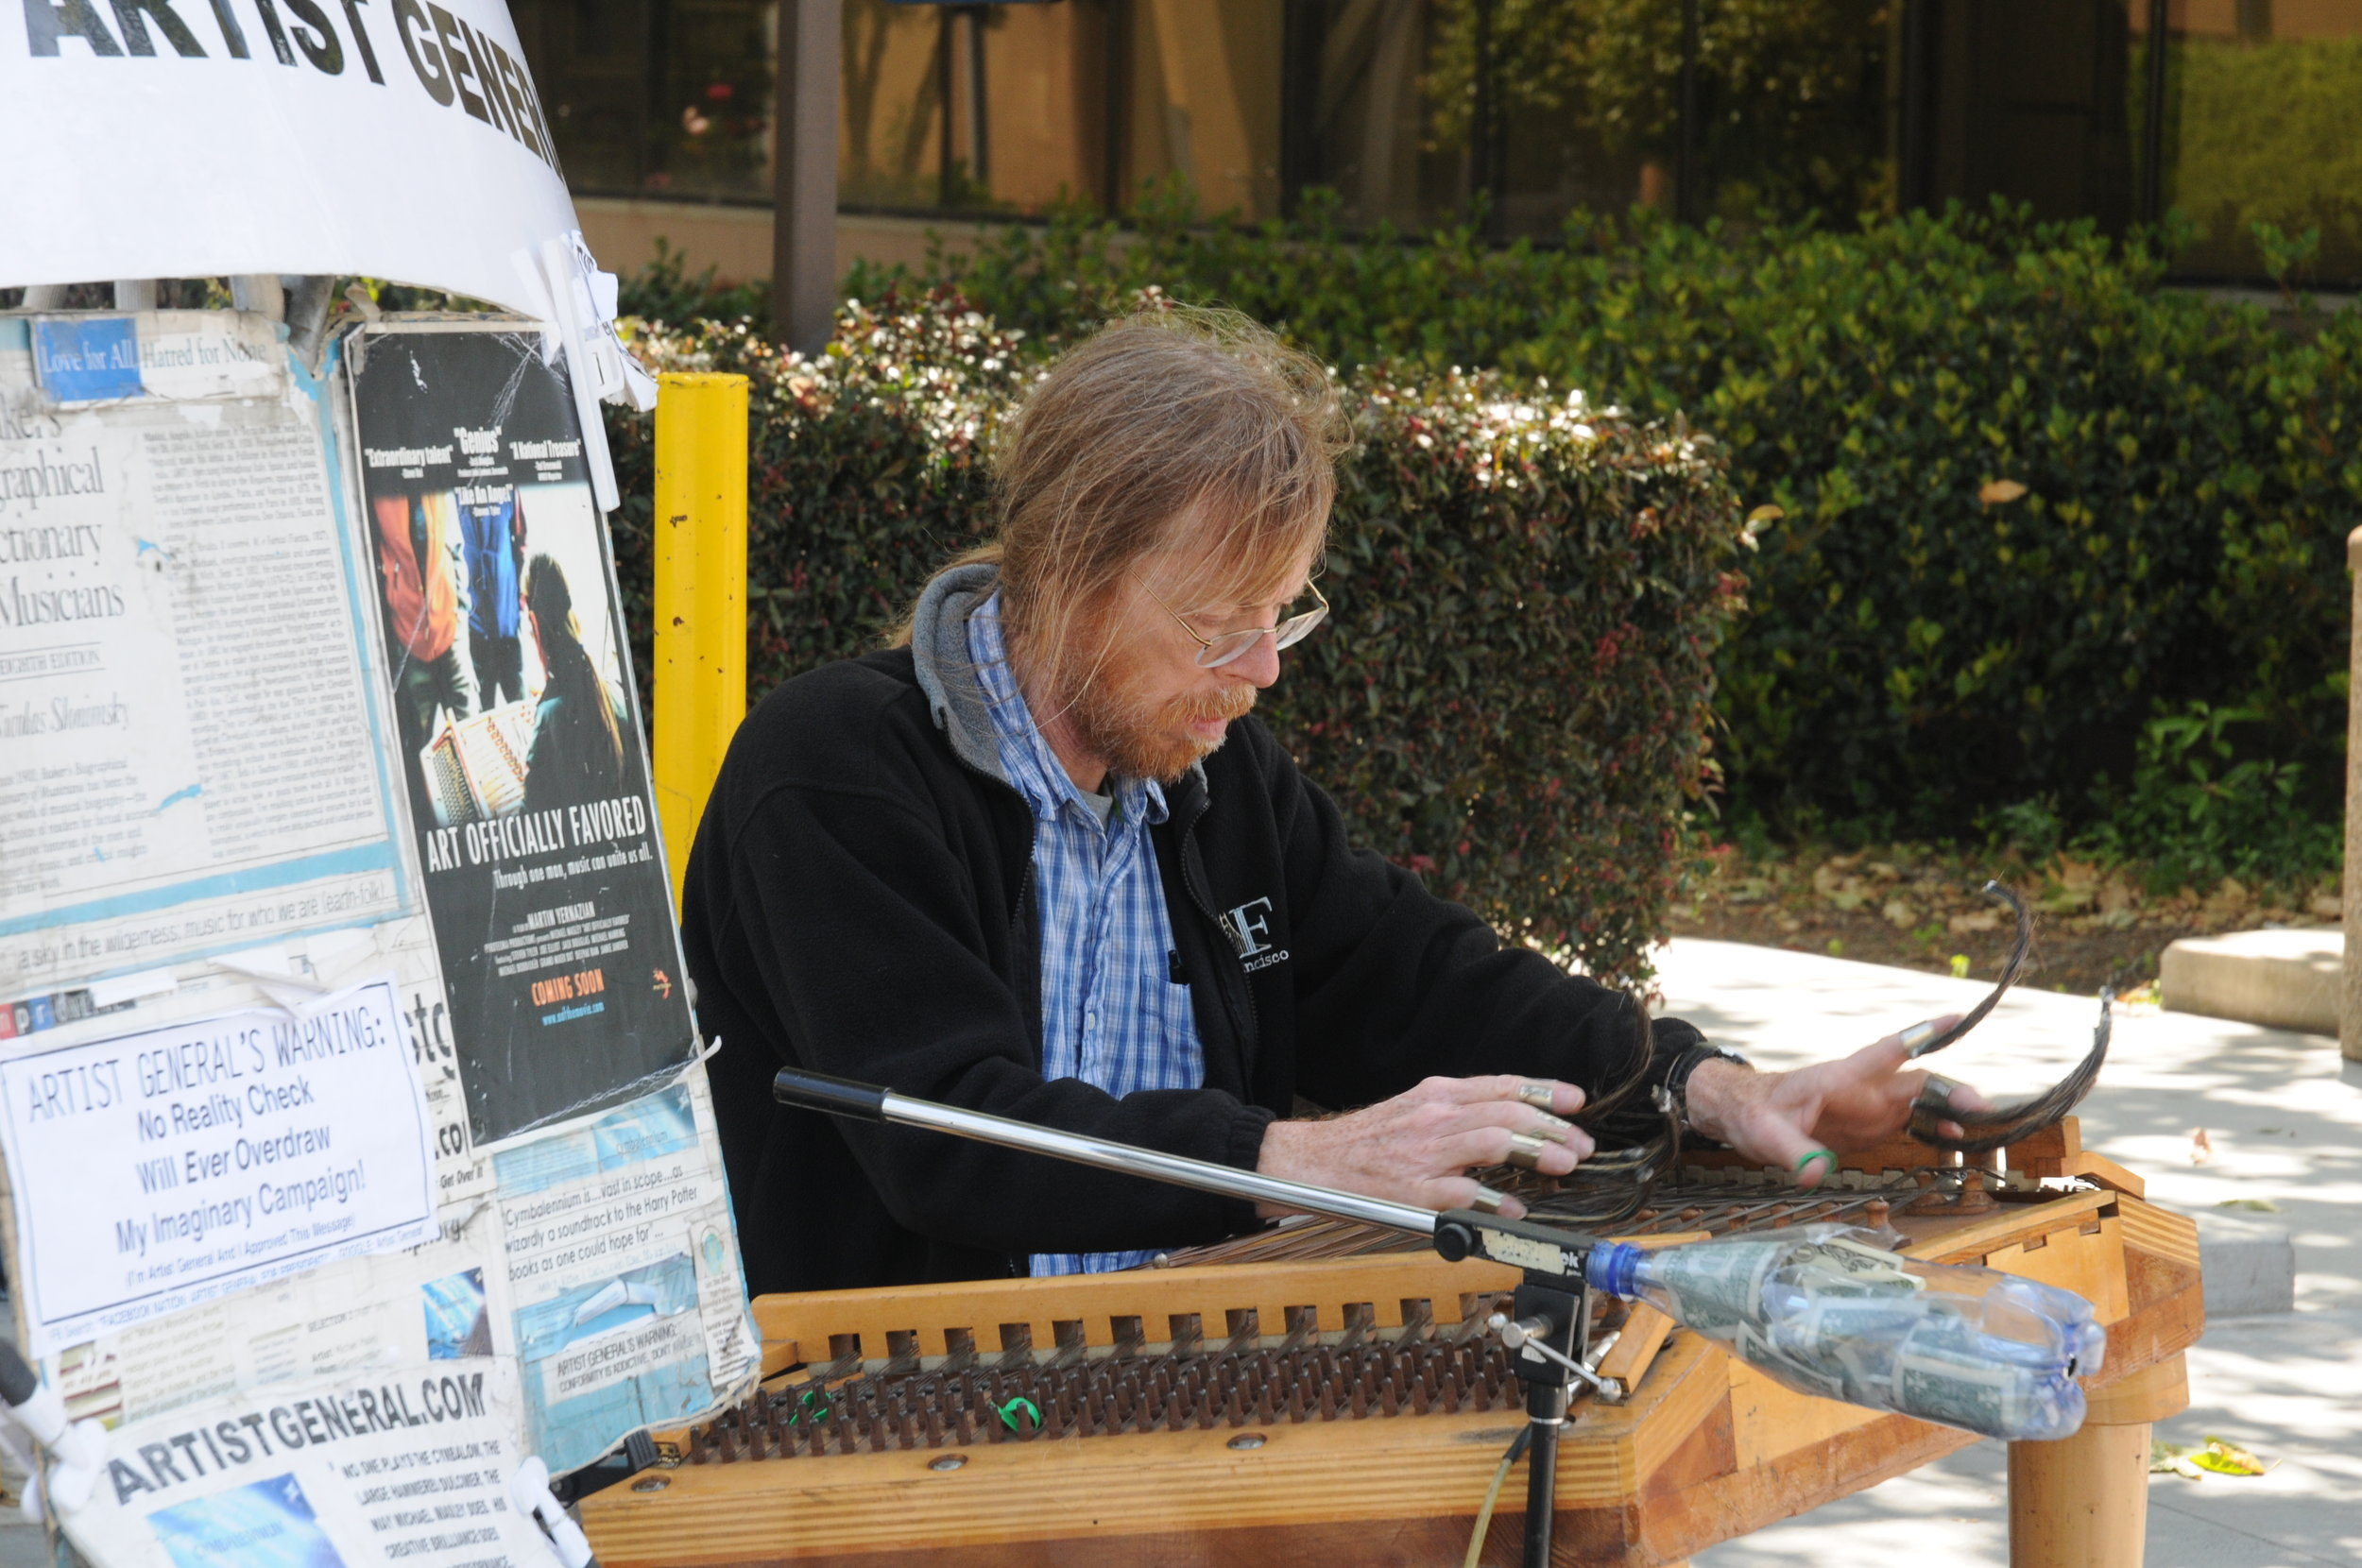 """Michael Masley, aka """"The Artist General"""" - Slide-Hammer AutoharpSATURDAY: 2454 Telegraph at Haste, - 2 pm on &SUNDAY: on Channing Ave, next to The Bird, 2400 Telegraph - 2 pm onIf you follow celestial sounds of music wafting through the air, you'll likely find local street musician treasure, Michael Masley. He is a unique American composer, instrumentalist, & inventor of musical instruments. You can hear & see his sonic inventions on youtube """"COLLATERAL TIMBRE Tools of Engagement"""".This """"Beethoven"""" of the streets, creates sounds that are full of harmonic resonances & tones expanding & rippling over each other. This music is soothing and creates wonder. It is defined by unusually complex textures.The most famous instrument in his menagerie of musical inventions is the """"bowhammer cymbalom"""". The Slide-Hammer Autoharp is his new muse. It is derived from the autoharp, where one depresses a button which dampens all the strings except for chords which the player strums. Michael multiplies sounds & rhythms by sliding a metal bar over the strings which stretches tones, and by plucking strings. More at: https://www.artistgeneral.com/"""